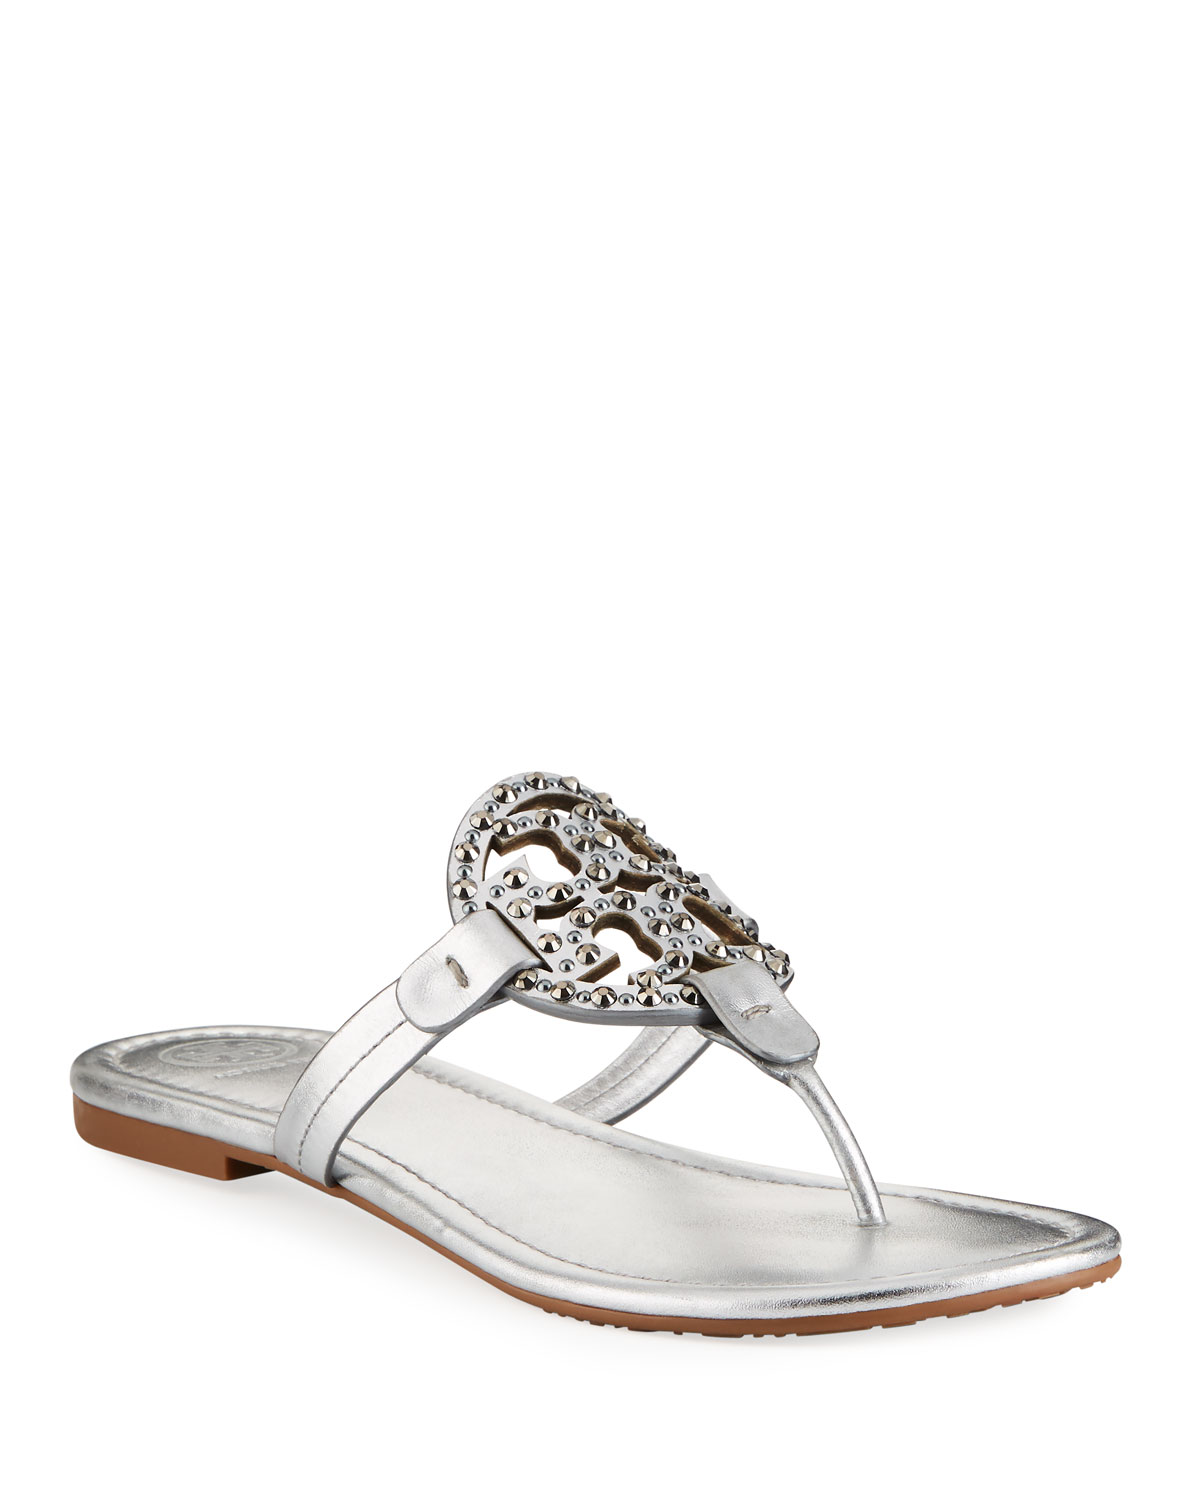 7423cb1af Tory BurchMiller Flat Metallic Leather Slide Sandals with Embellished Logo